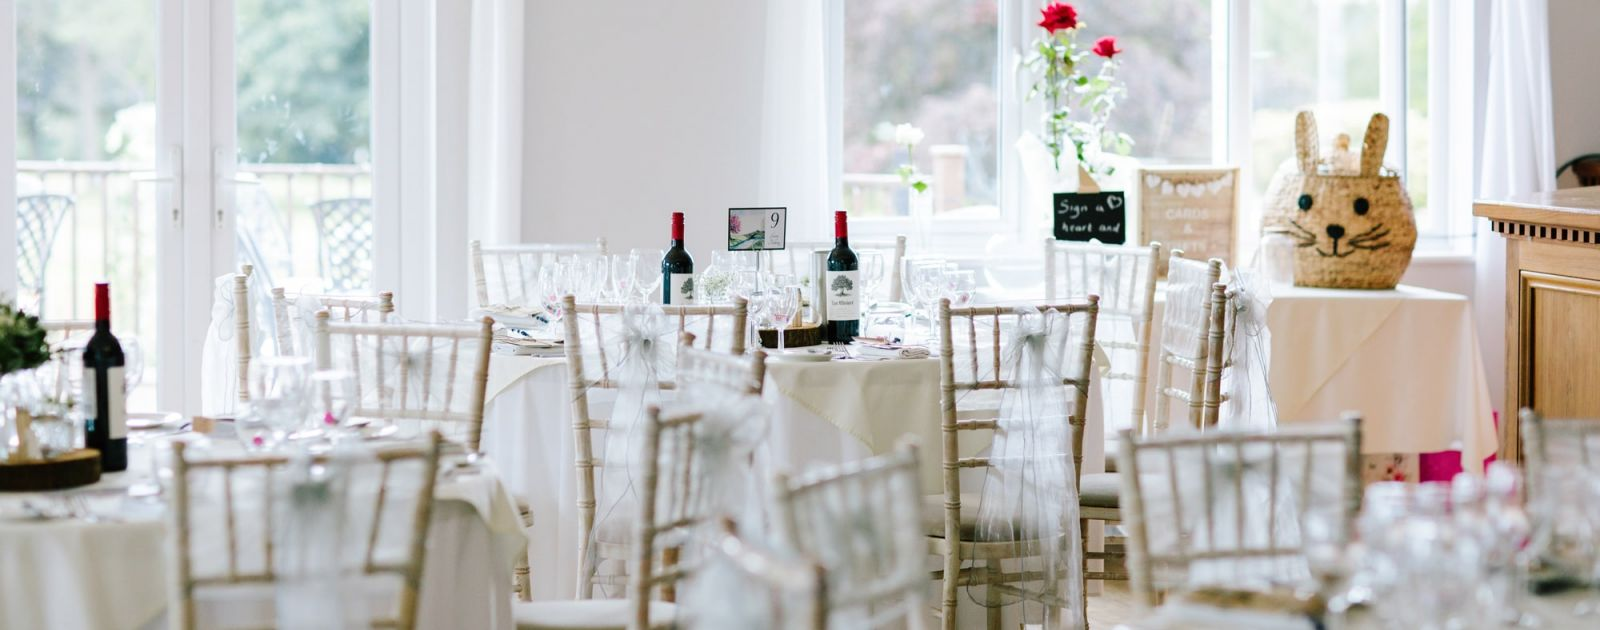 Wedding Venue (Southampton, Hampshire)